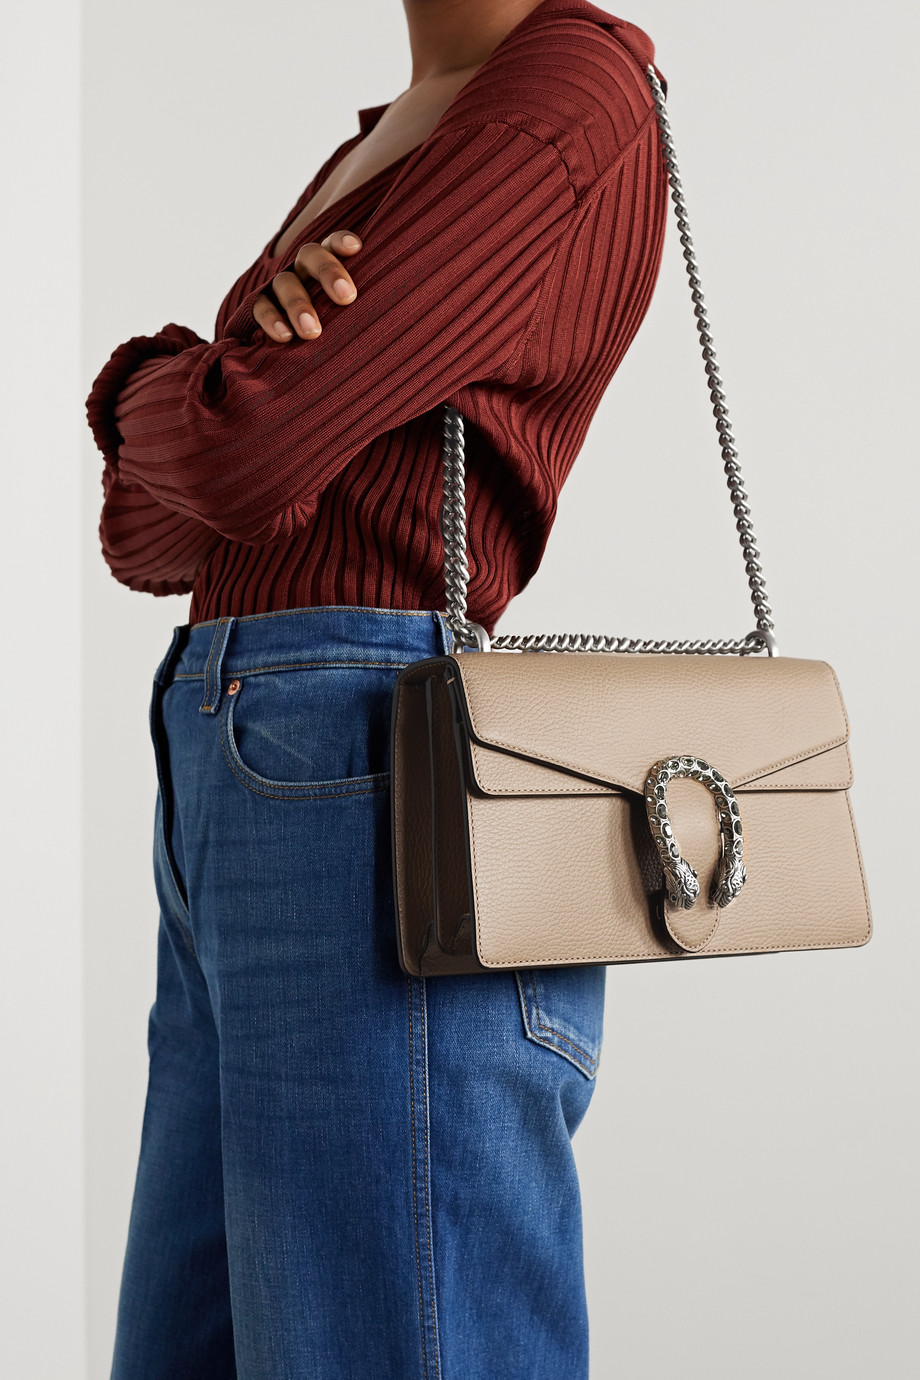 GUCCI + NET SUSTAIN Dionysus small textured-leather shoulder bag